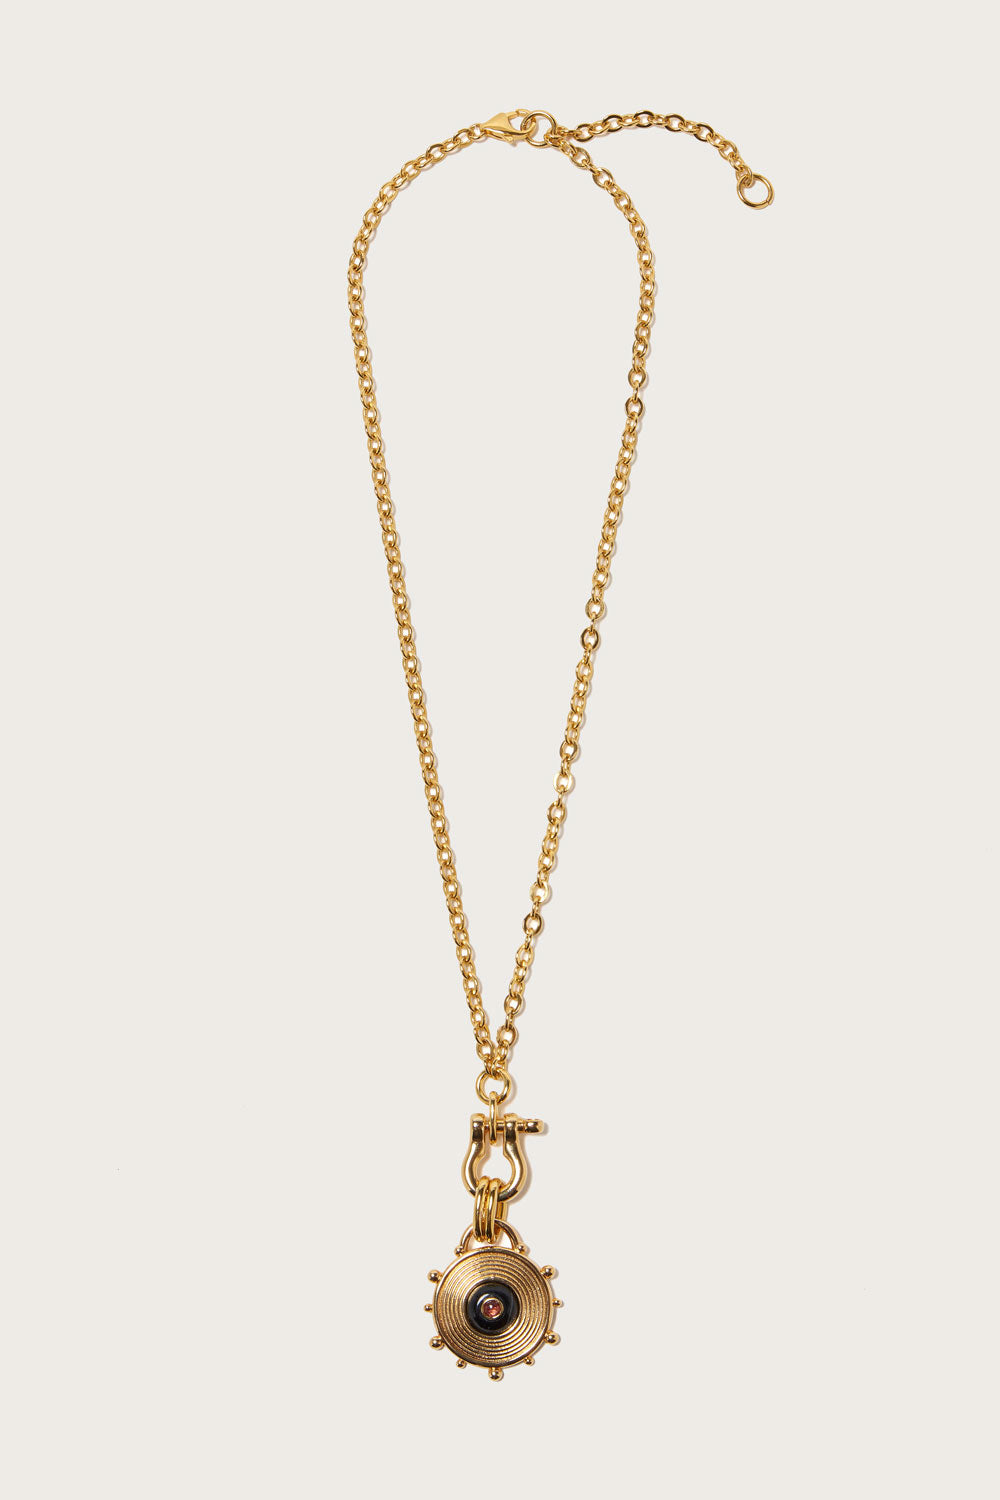 *Pre-Order* Helm Pendant Necklace in Gold